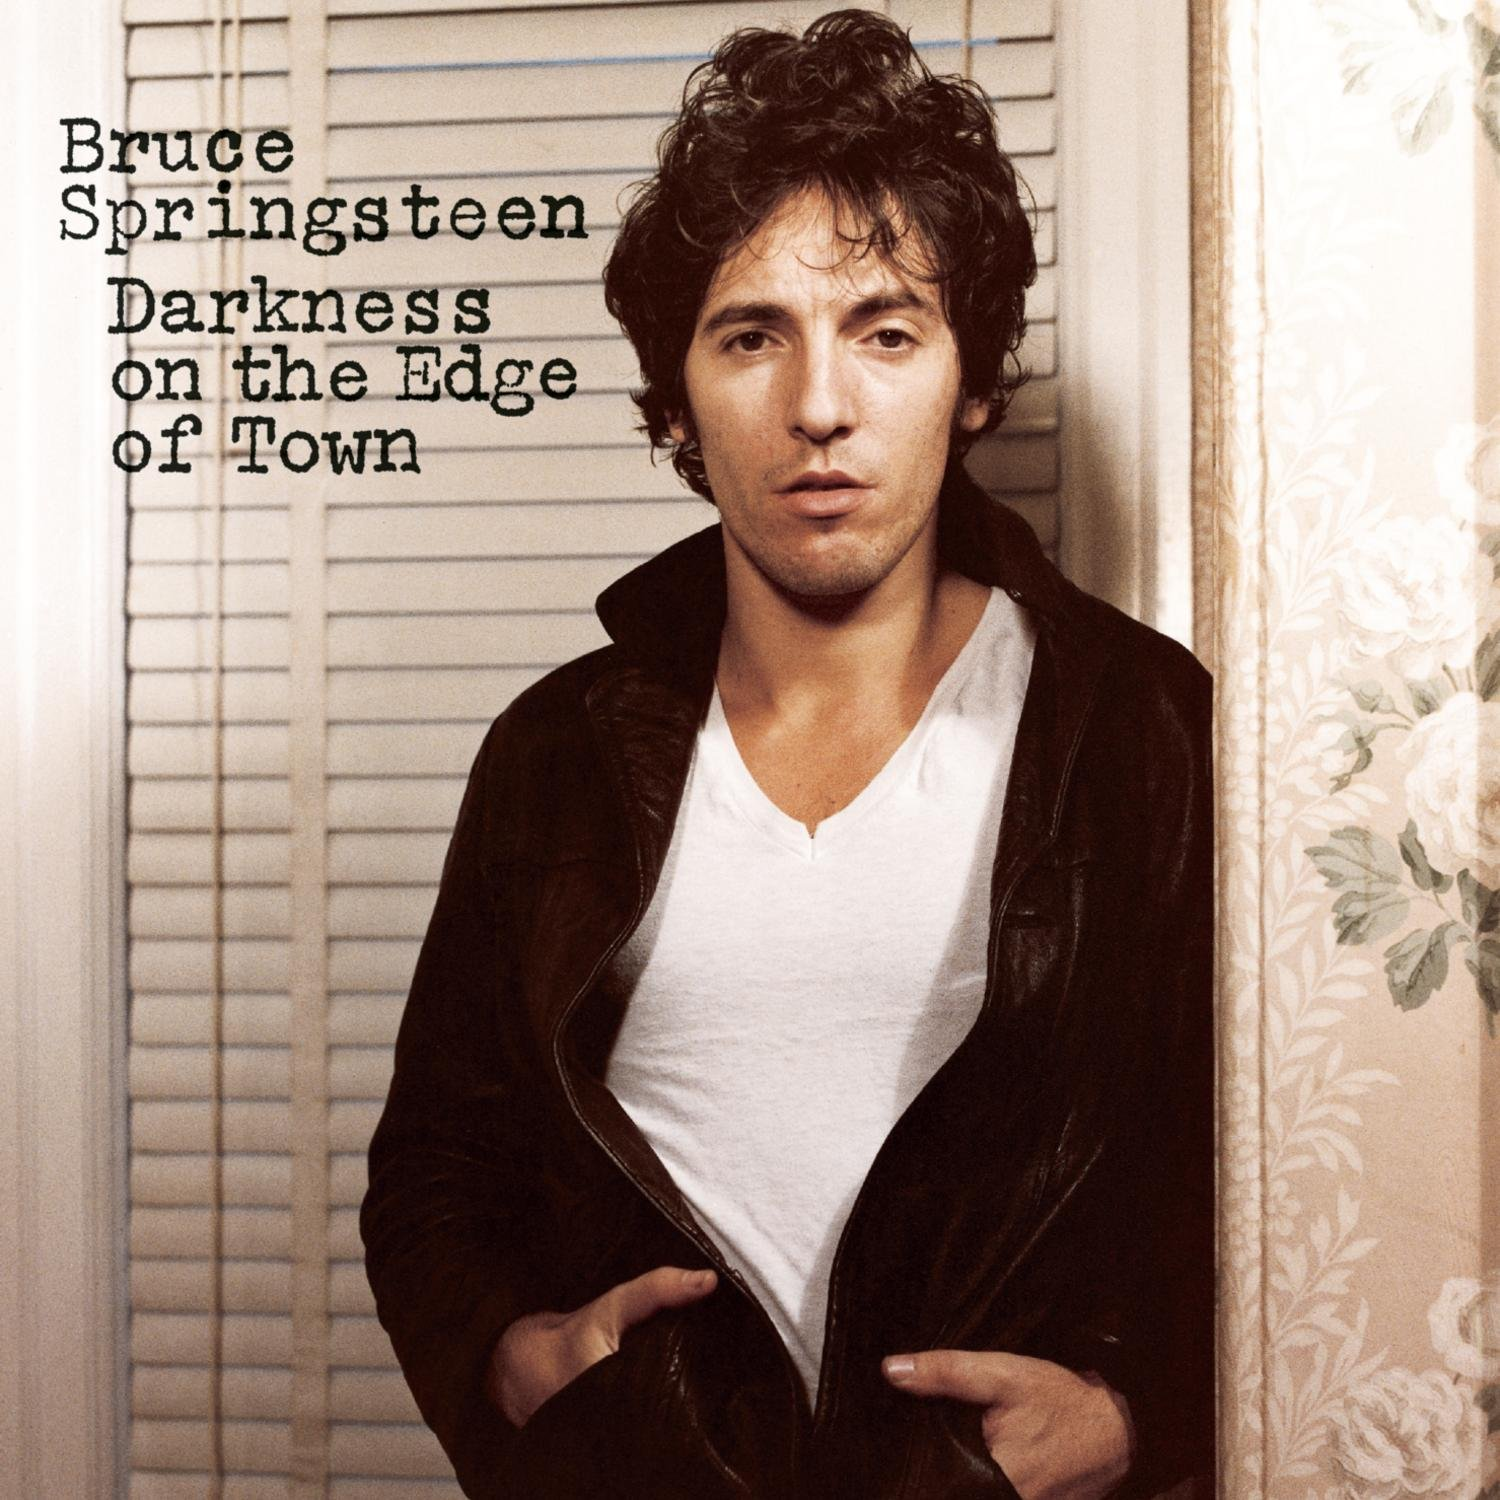 Image result for darkness on the edge of town bruce springsteen